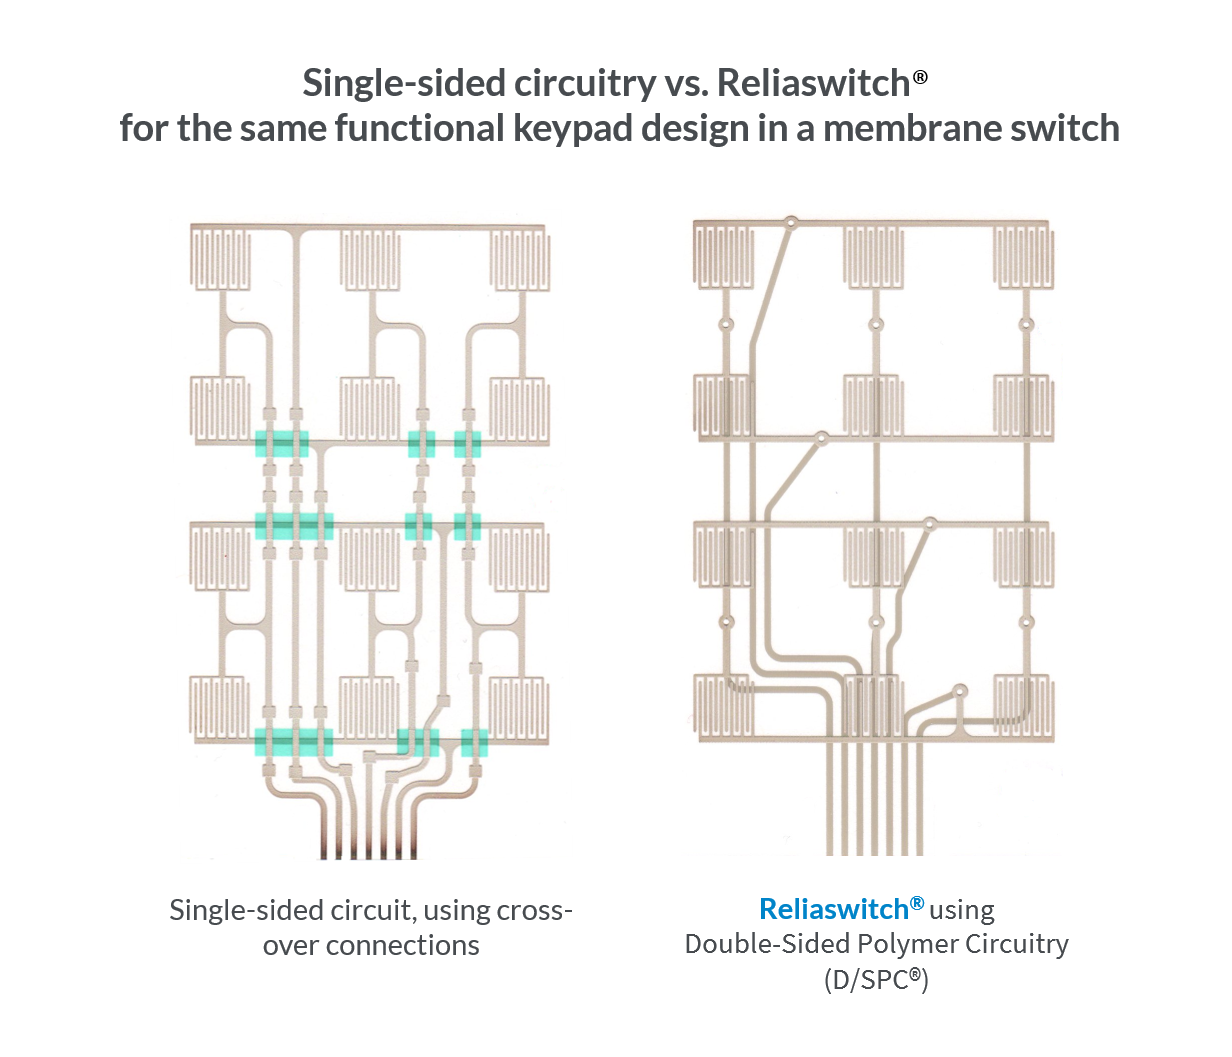 The single-sided membrane switch circuit on the left utilizes cross-over connections, which are vulnerable to silver migration, and ultimately circuitry failure. The Reliaswitch® circuit on the right is designed with Double-Sided Polymer Circuitry (D/SPC®), which has traces printed on both sides of the substrate and is inherently more reliable, as silver cannot migrate through the polyester substrate.